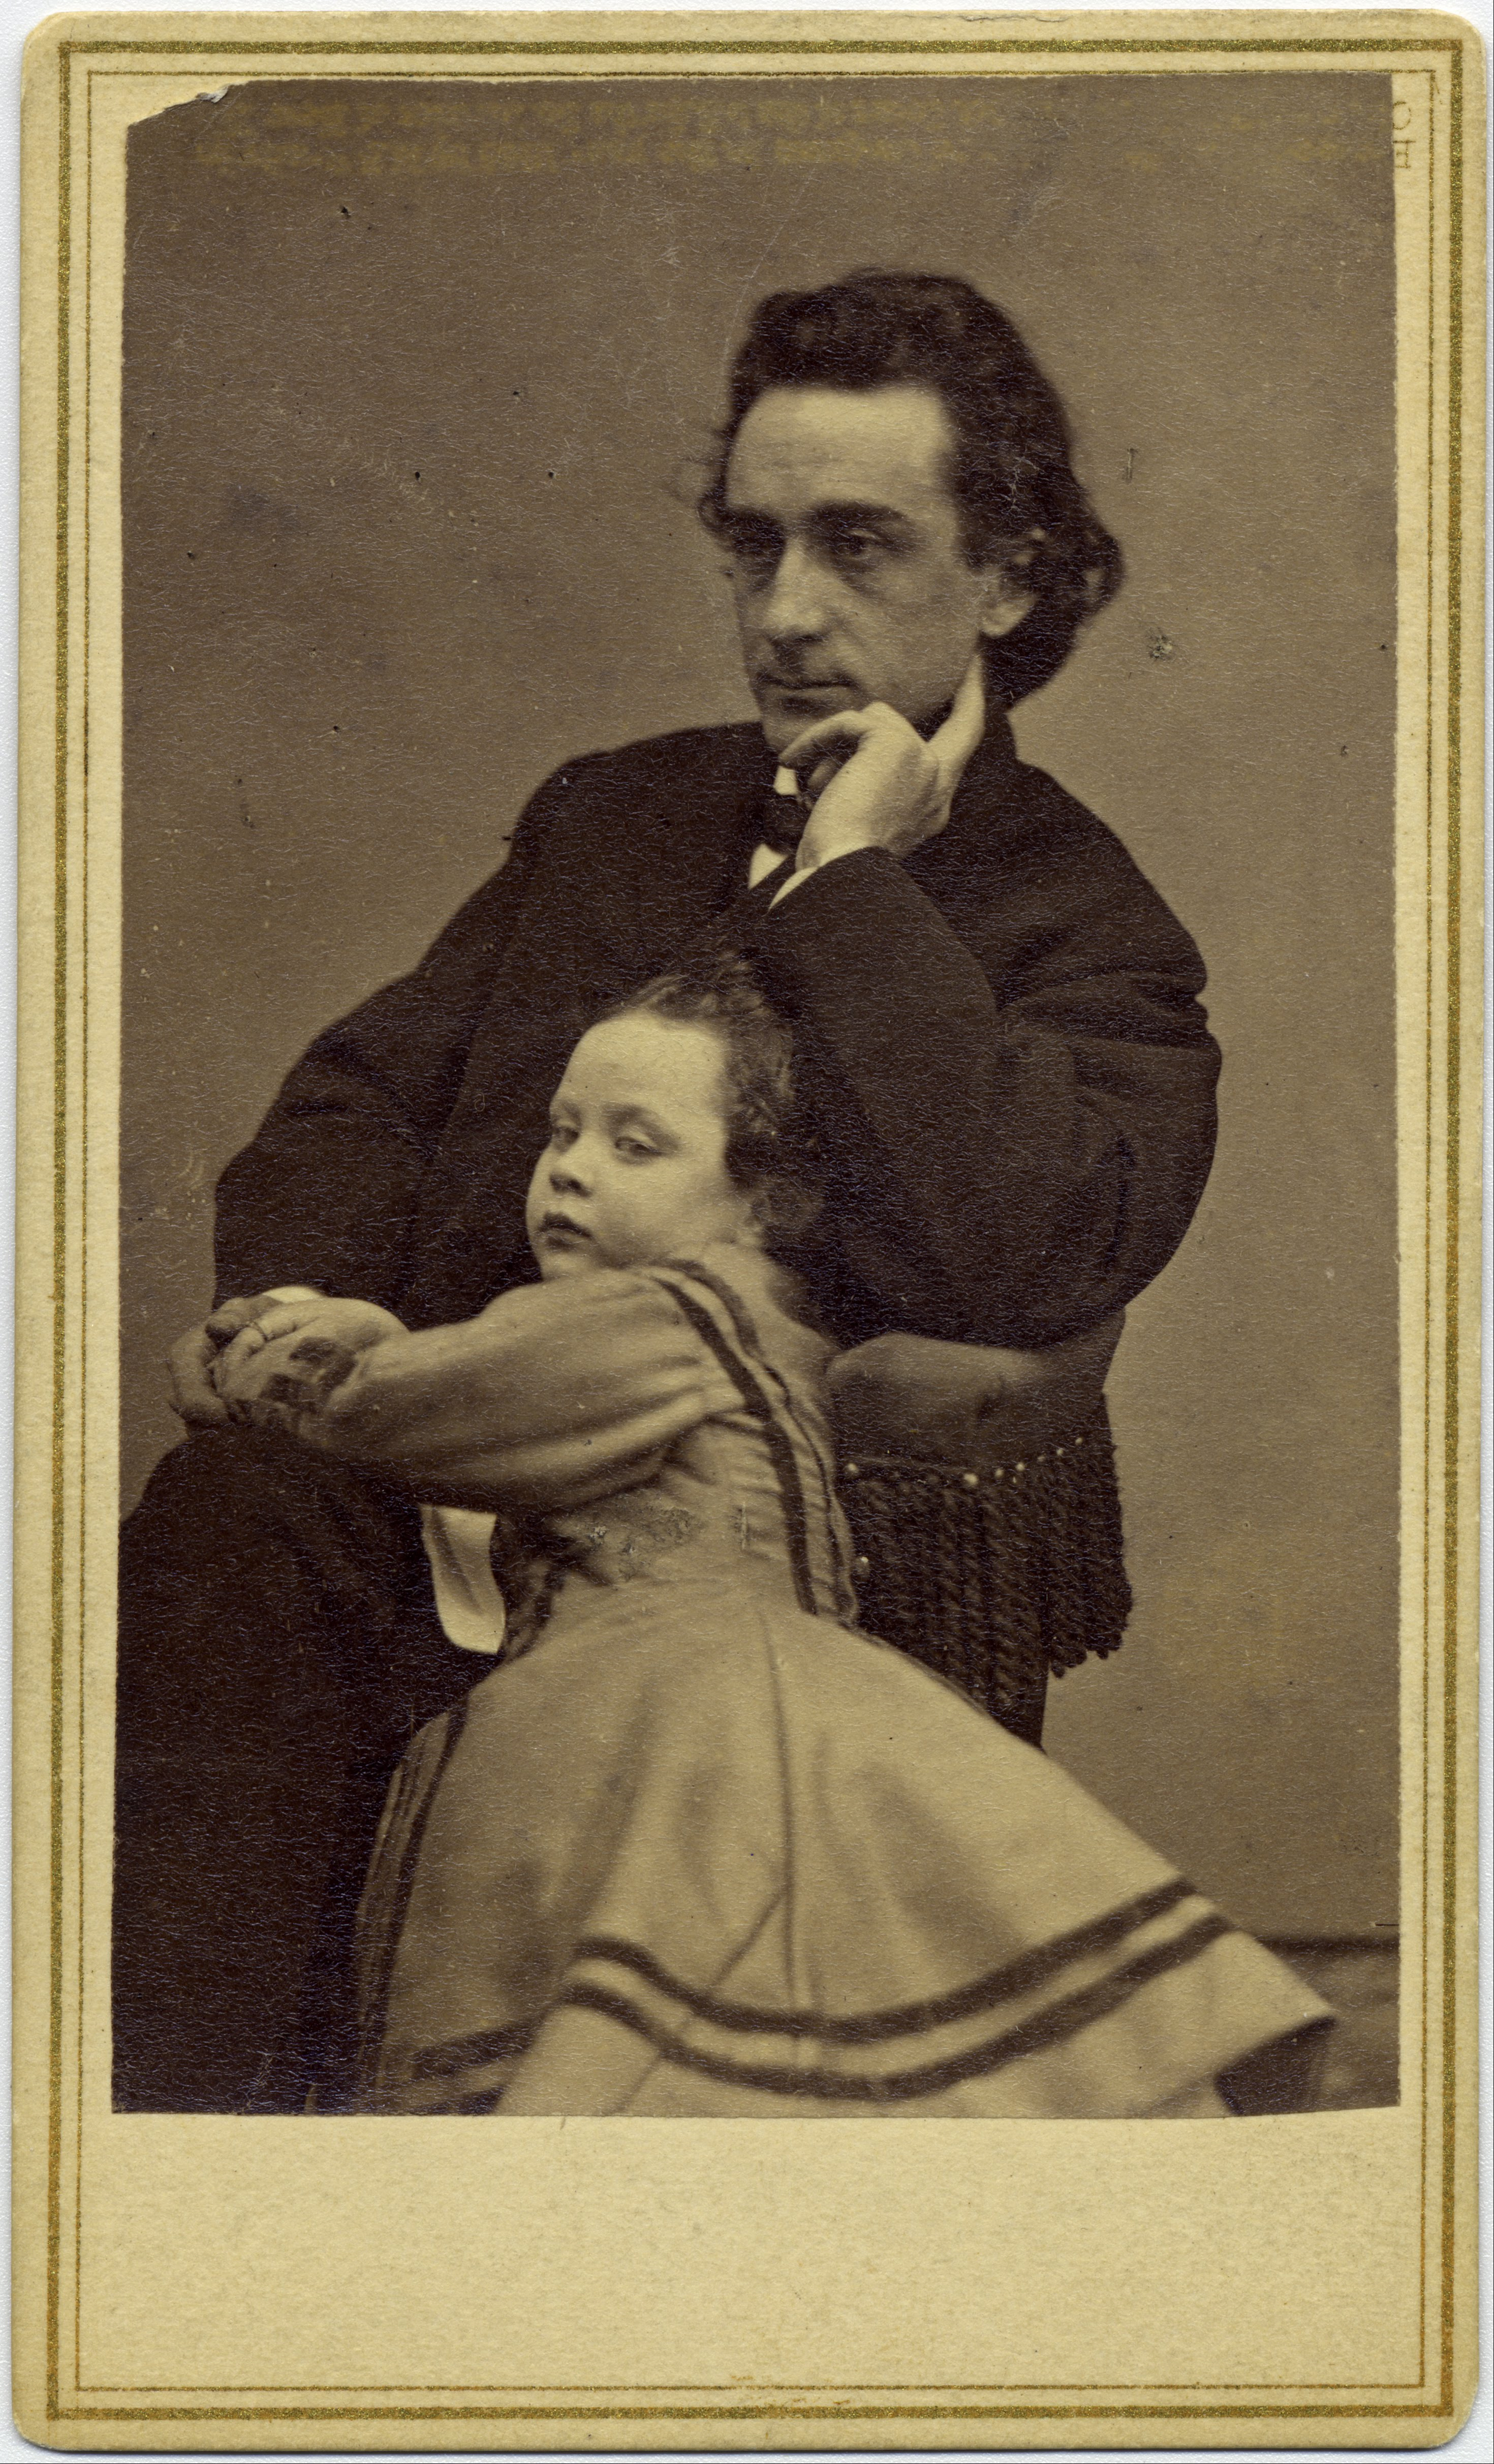 <b>Edwin Booth</b>     	</br>Edwin Booth and his daughter Edwina, 1863/1865.</br><br/><b>Source: </b><i>Public domain. https://commons.wikimedia.org/wiki/File:Mathew_B._Brady_-_Edwin_Booth_and_his_daughter_Edwina_-_Google_Art_Project.jpg</i>